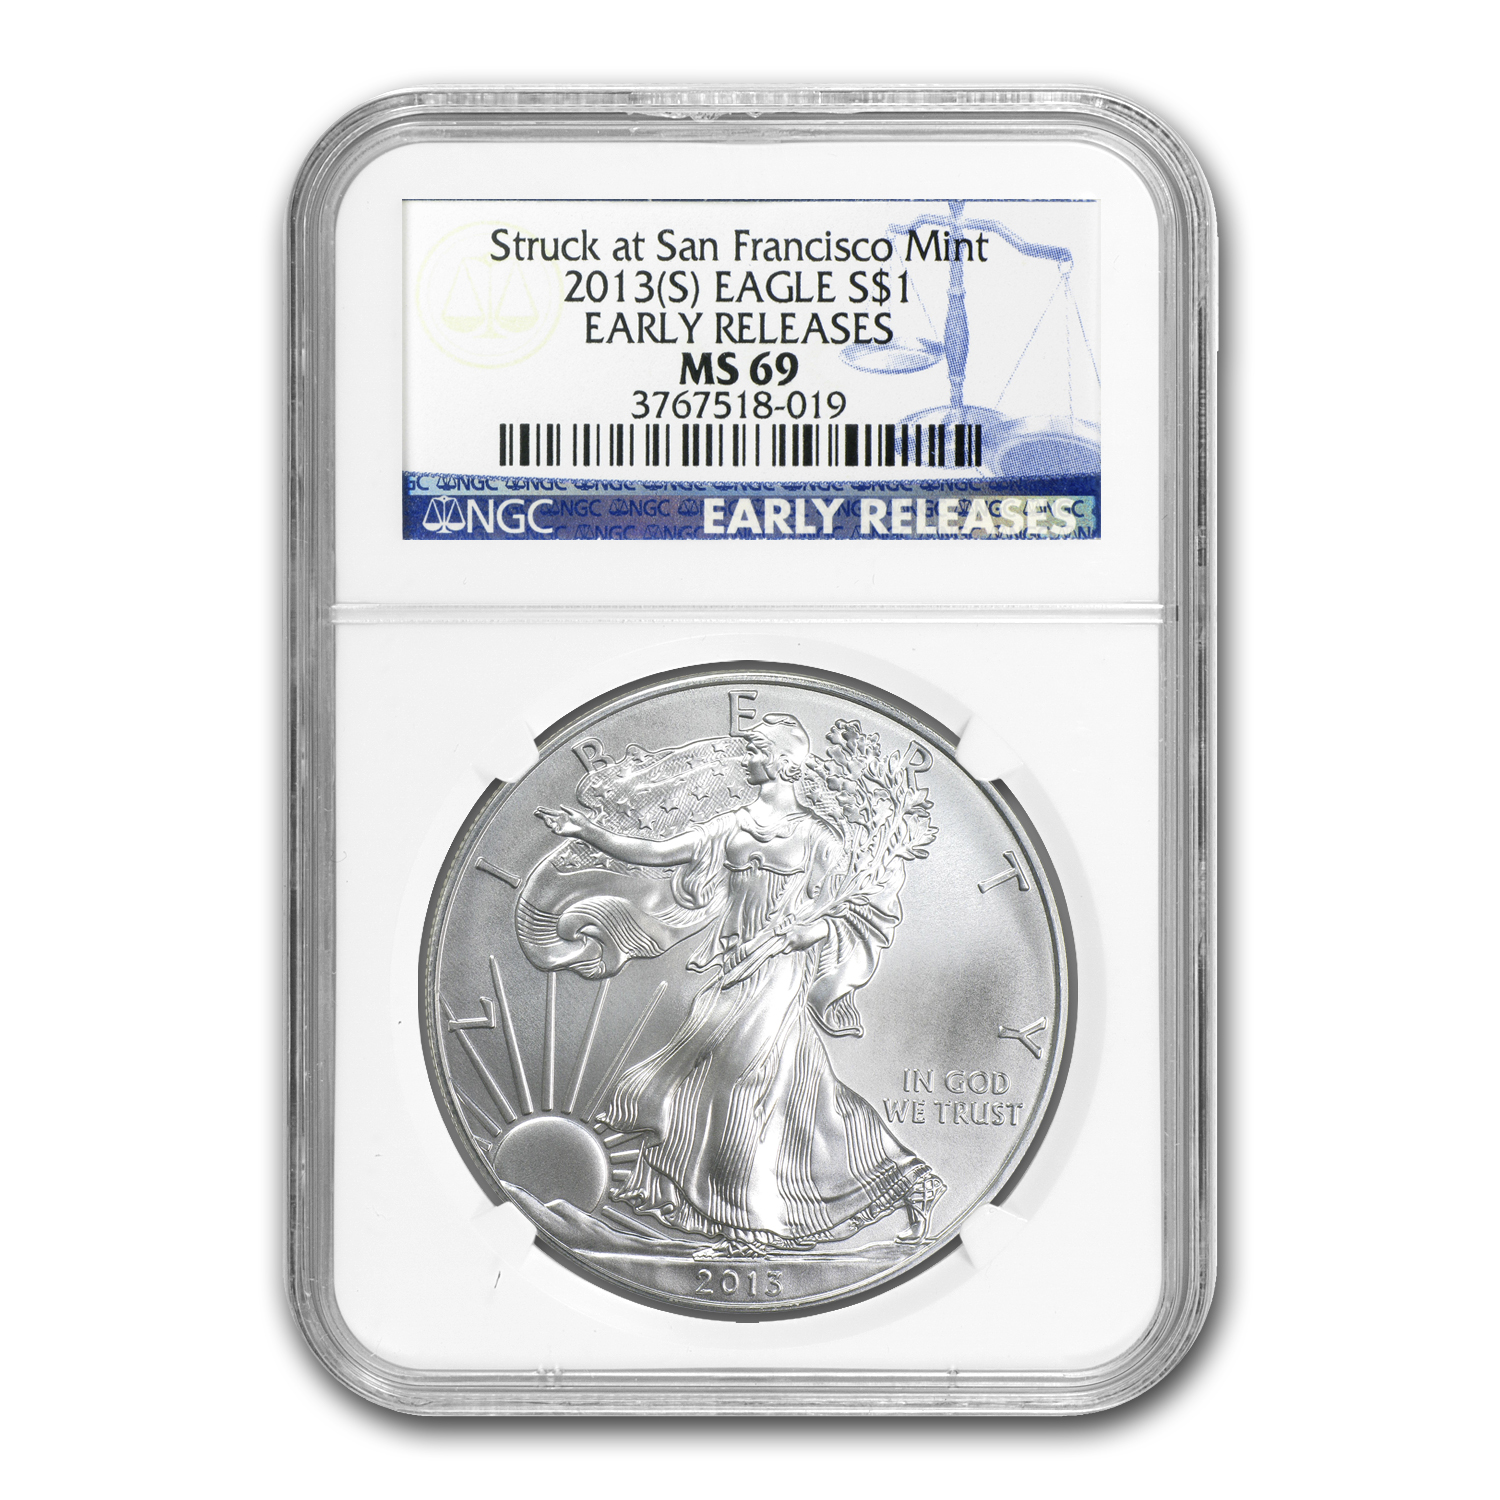 2013 Silver Eagles - MS-69 NGC - Early Releases 3 Coin Set